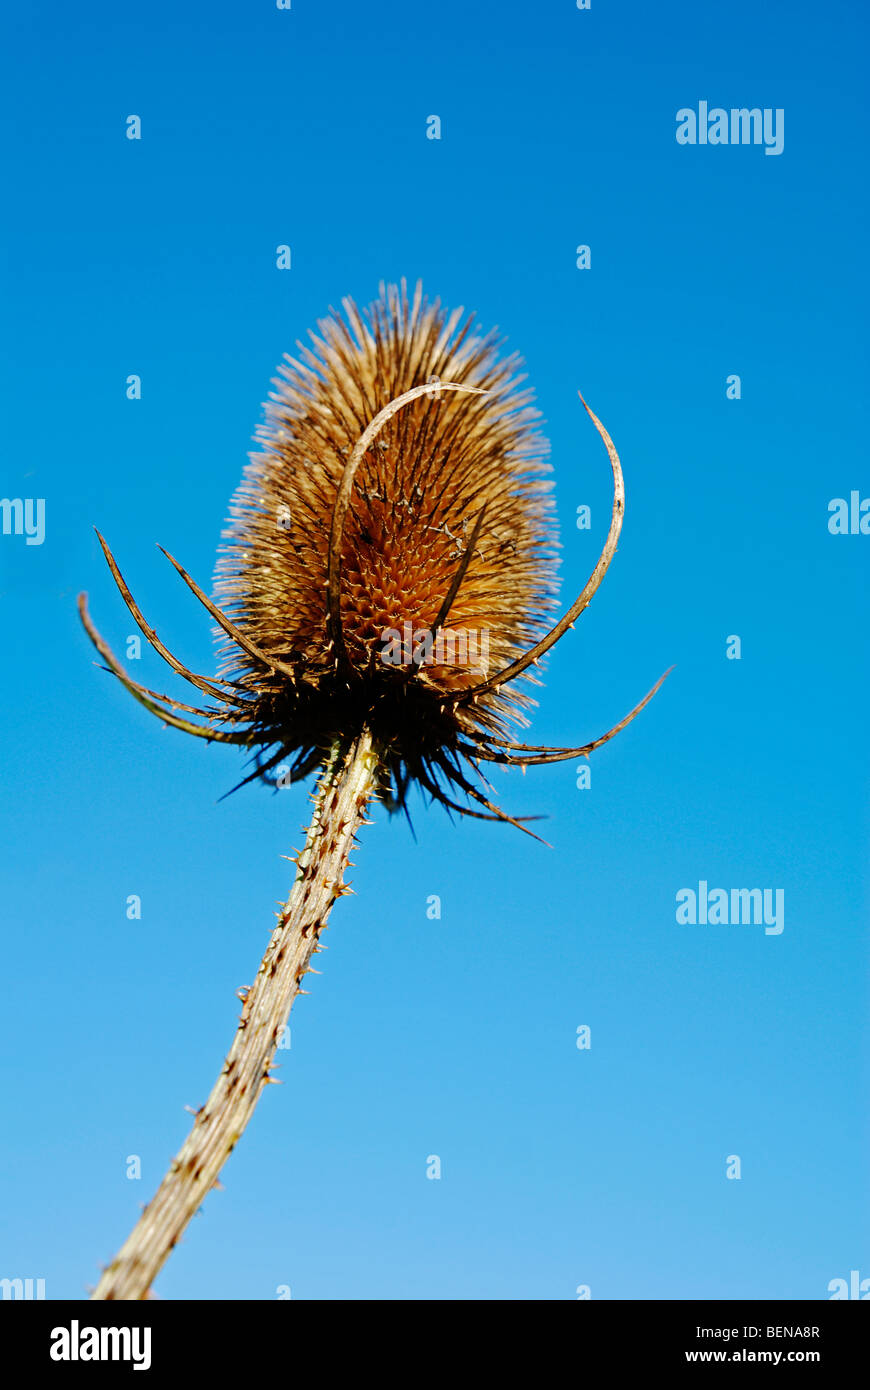 a head of dried teasel against a blue sky background - Stock Image